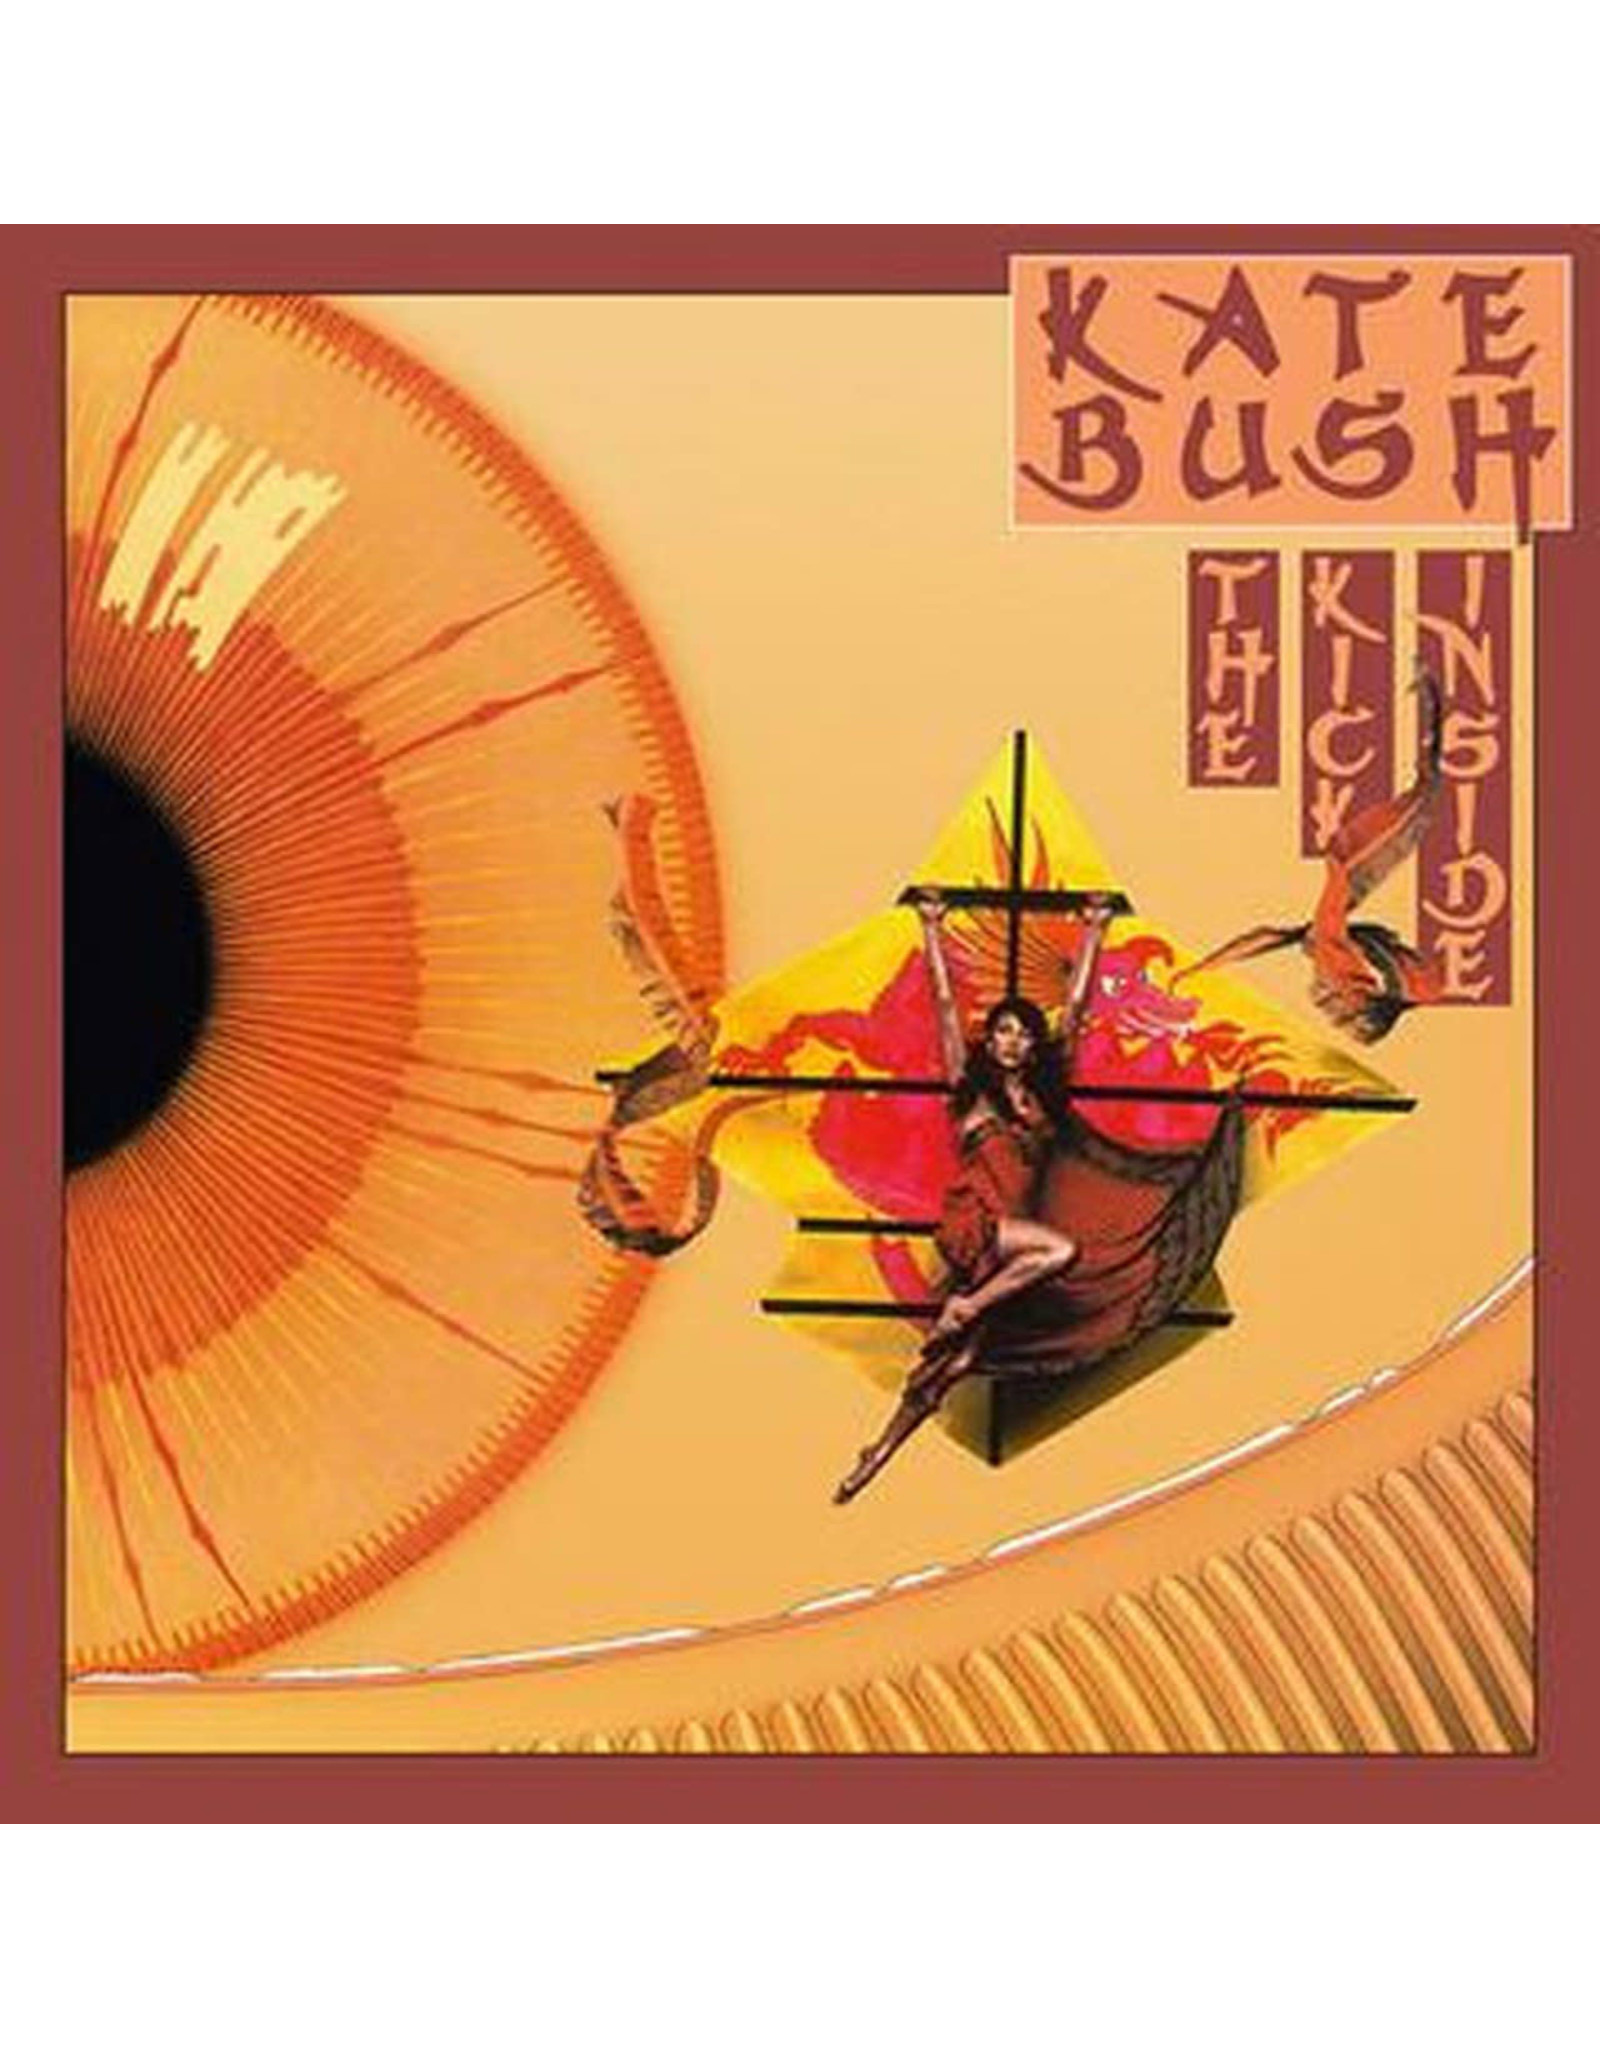 Kate Bush - Kick Inside